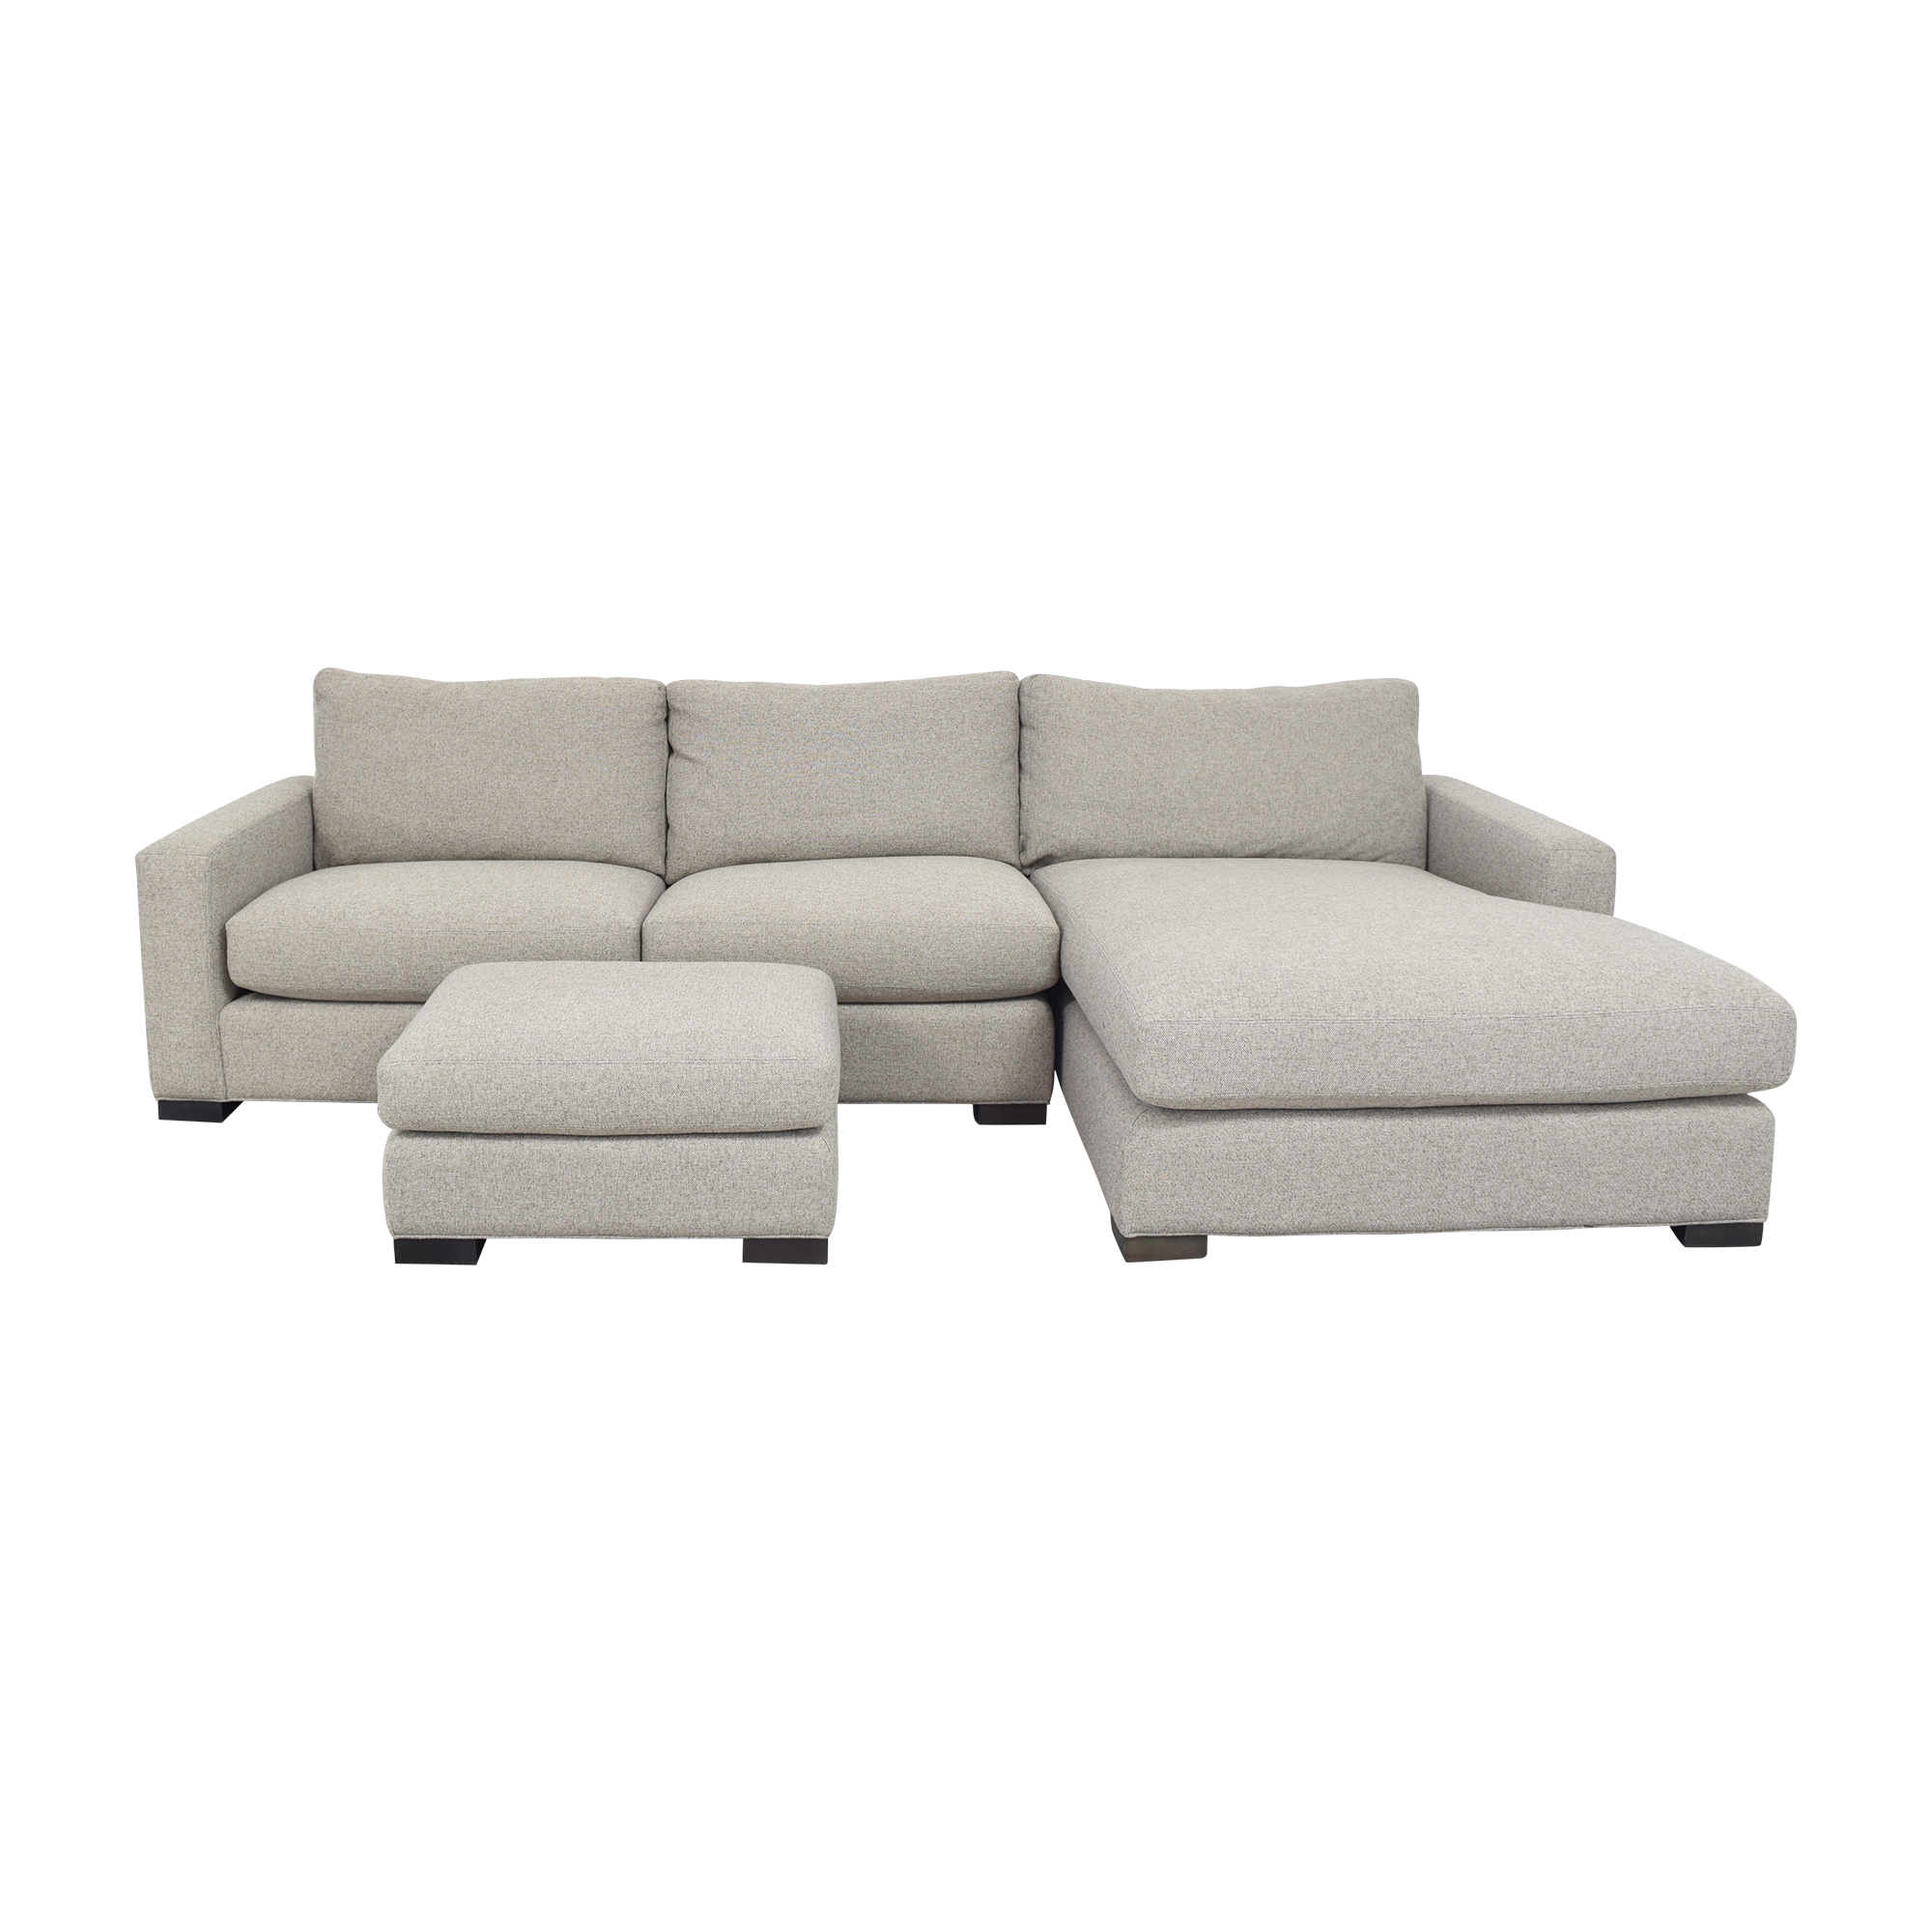 Room & Board Metro Chaise Sectional Sofa and Ottoman Room & Board